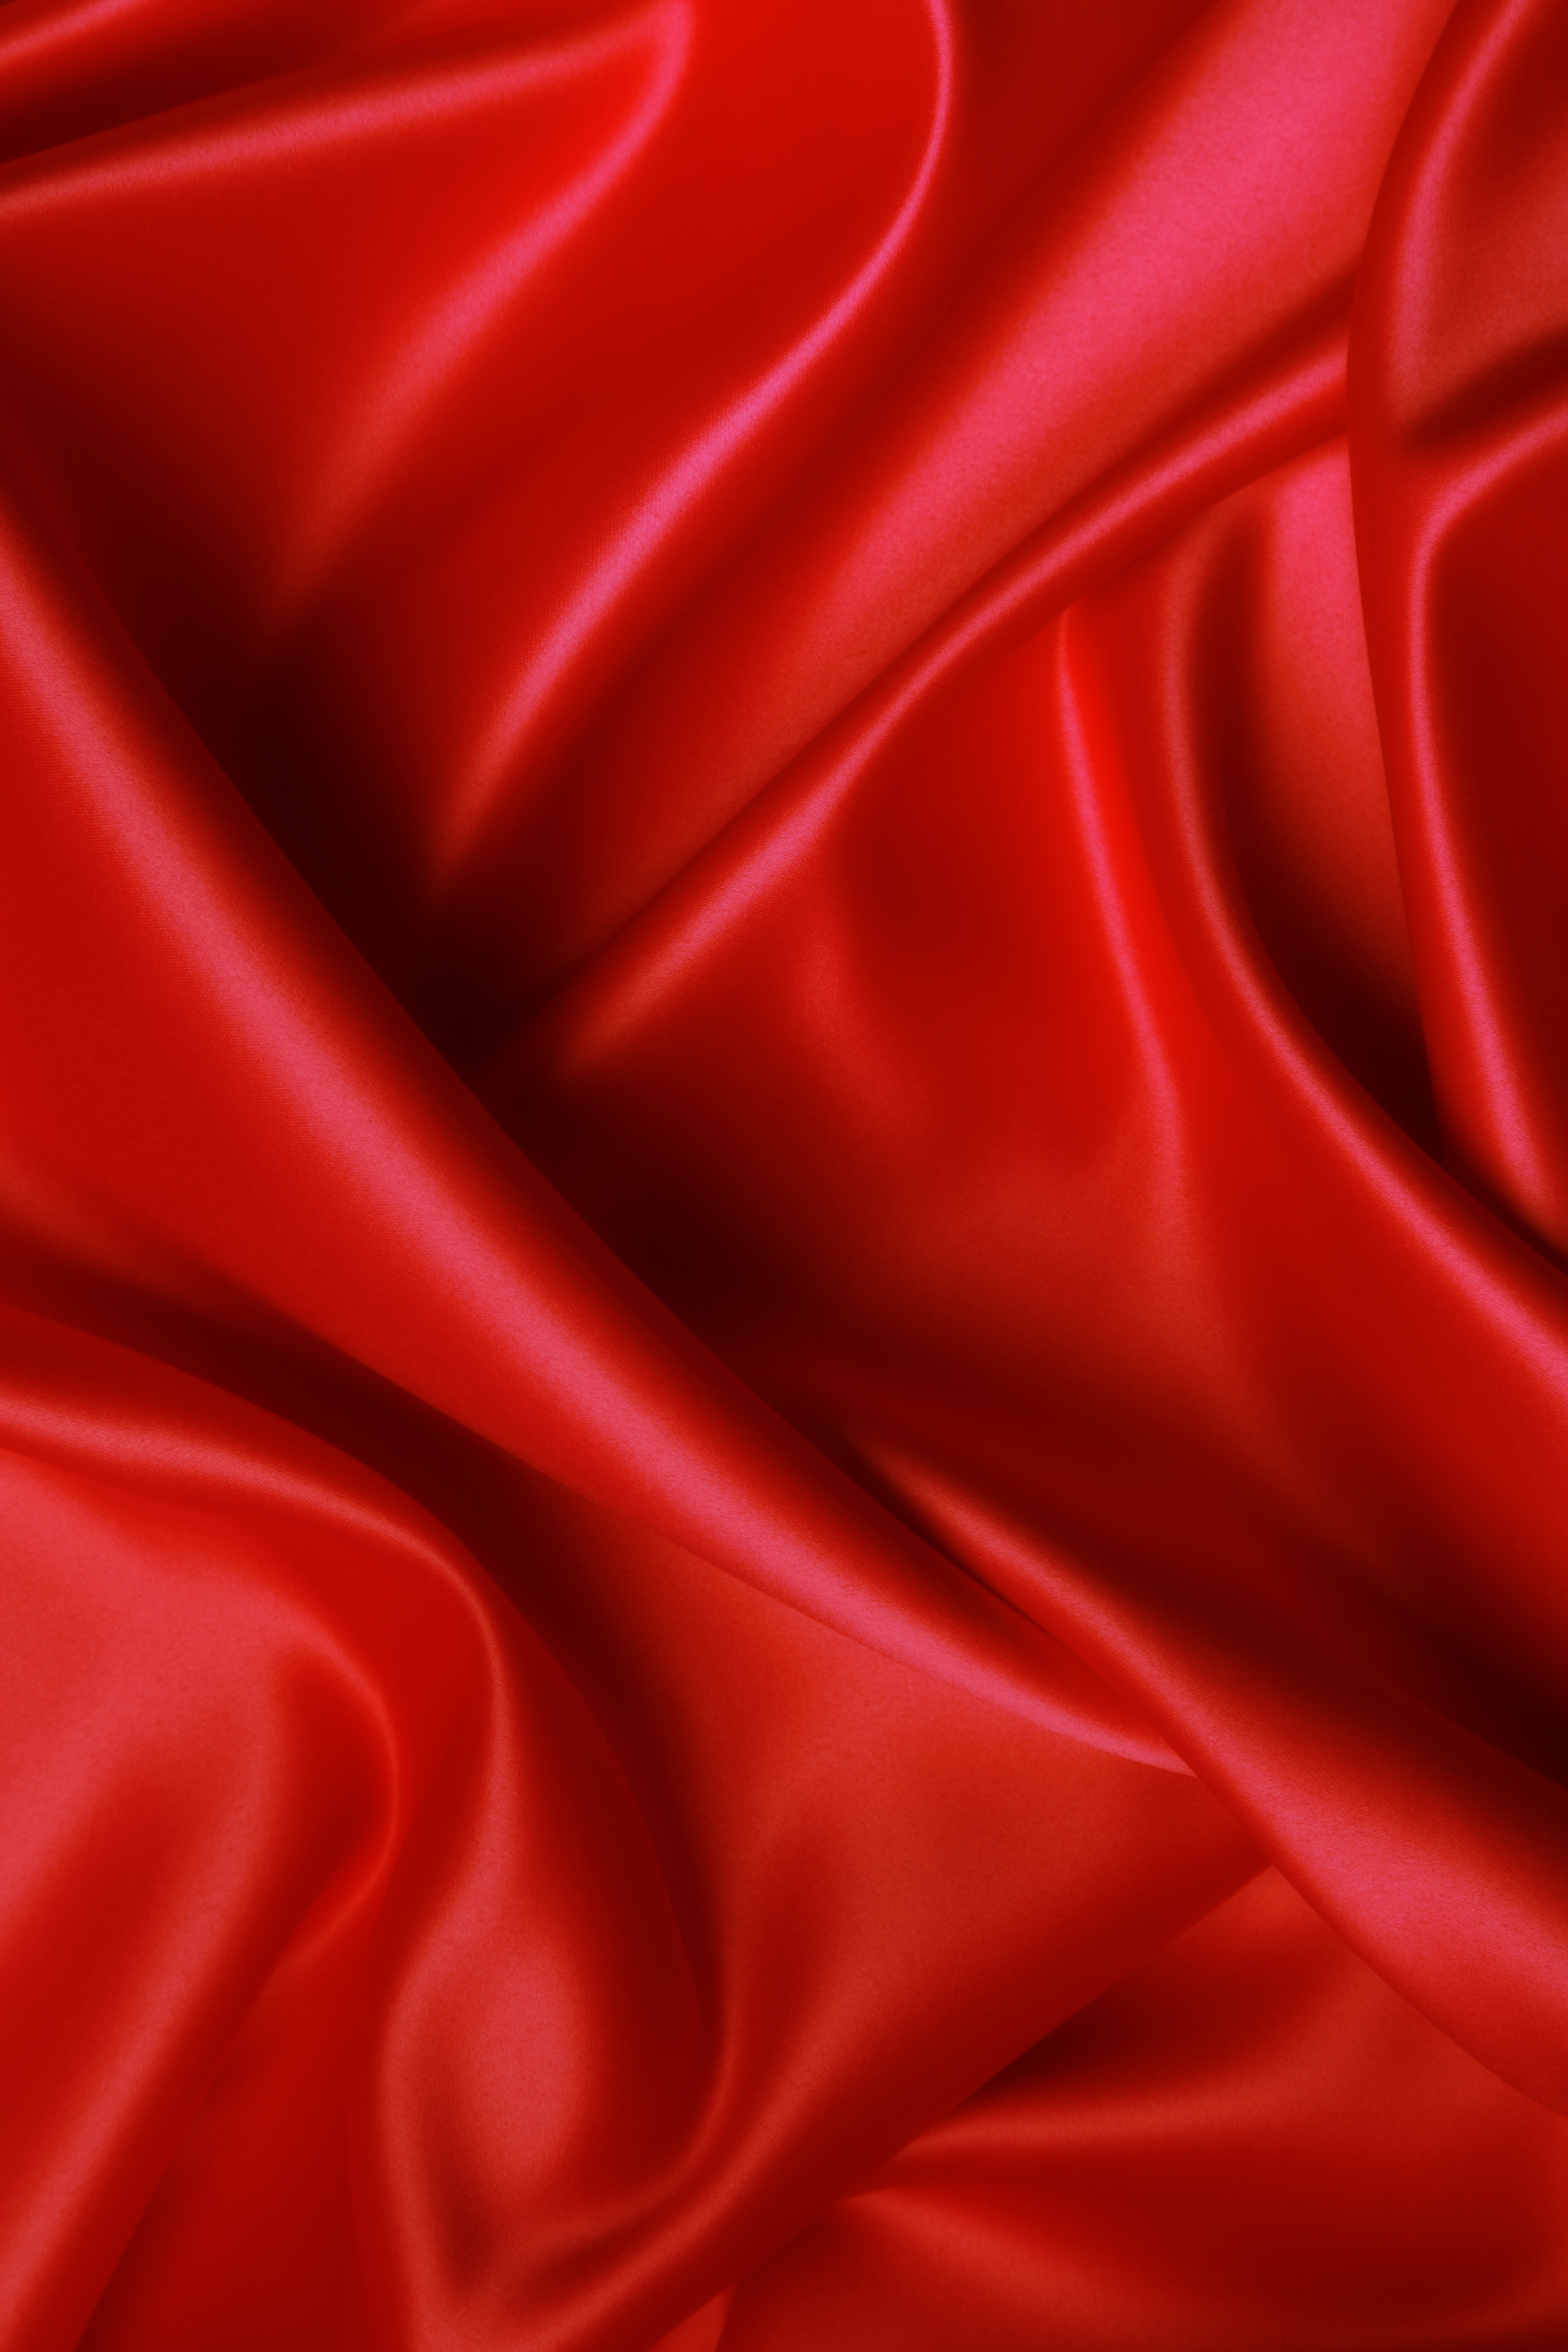 red fabric cloth, silk, download photo, background, texture, red satin texture background